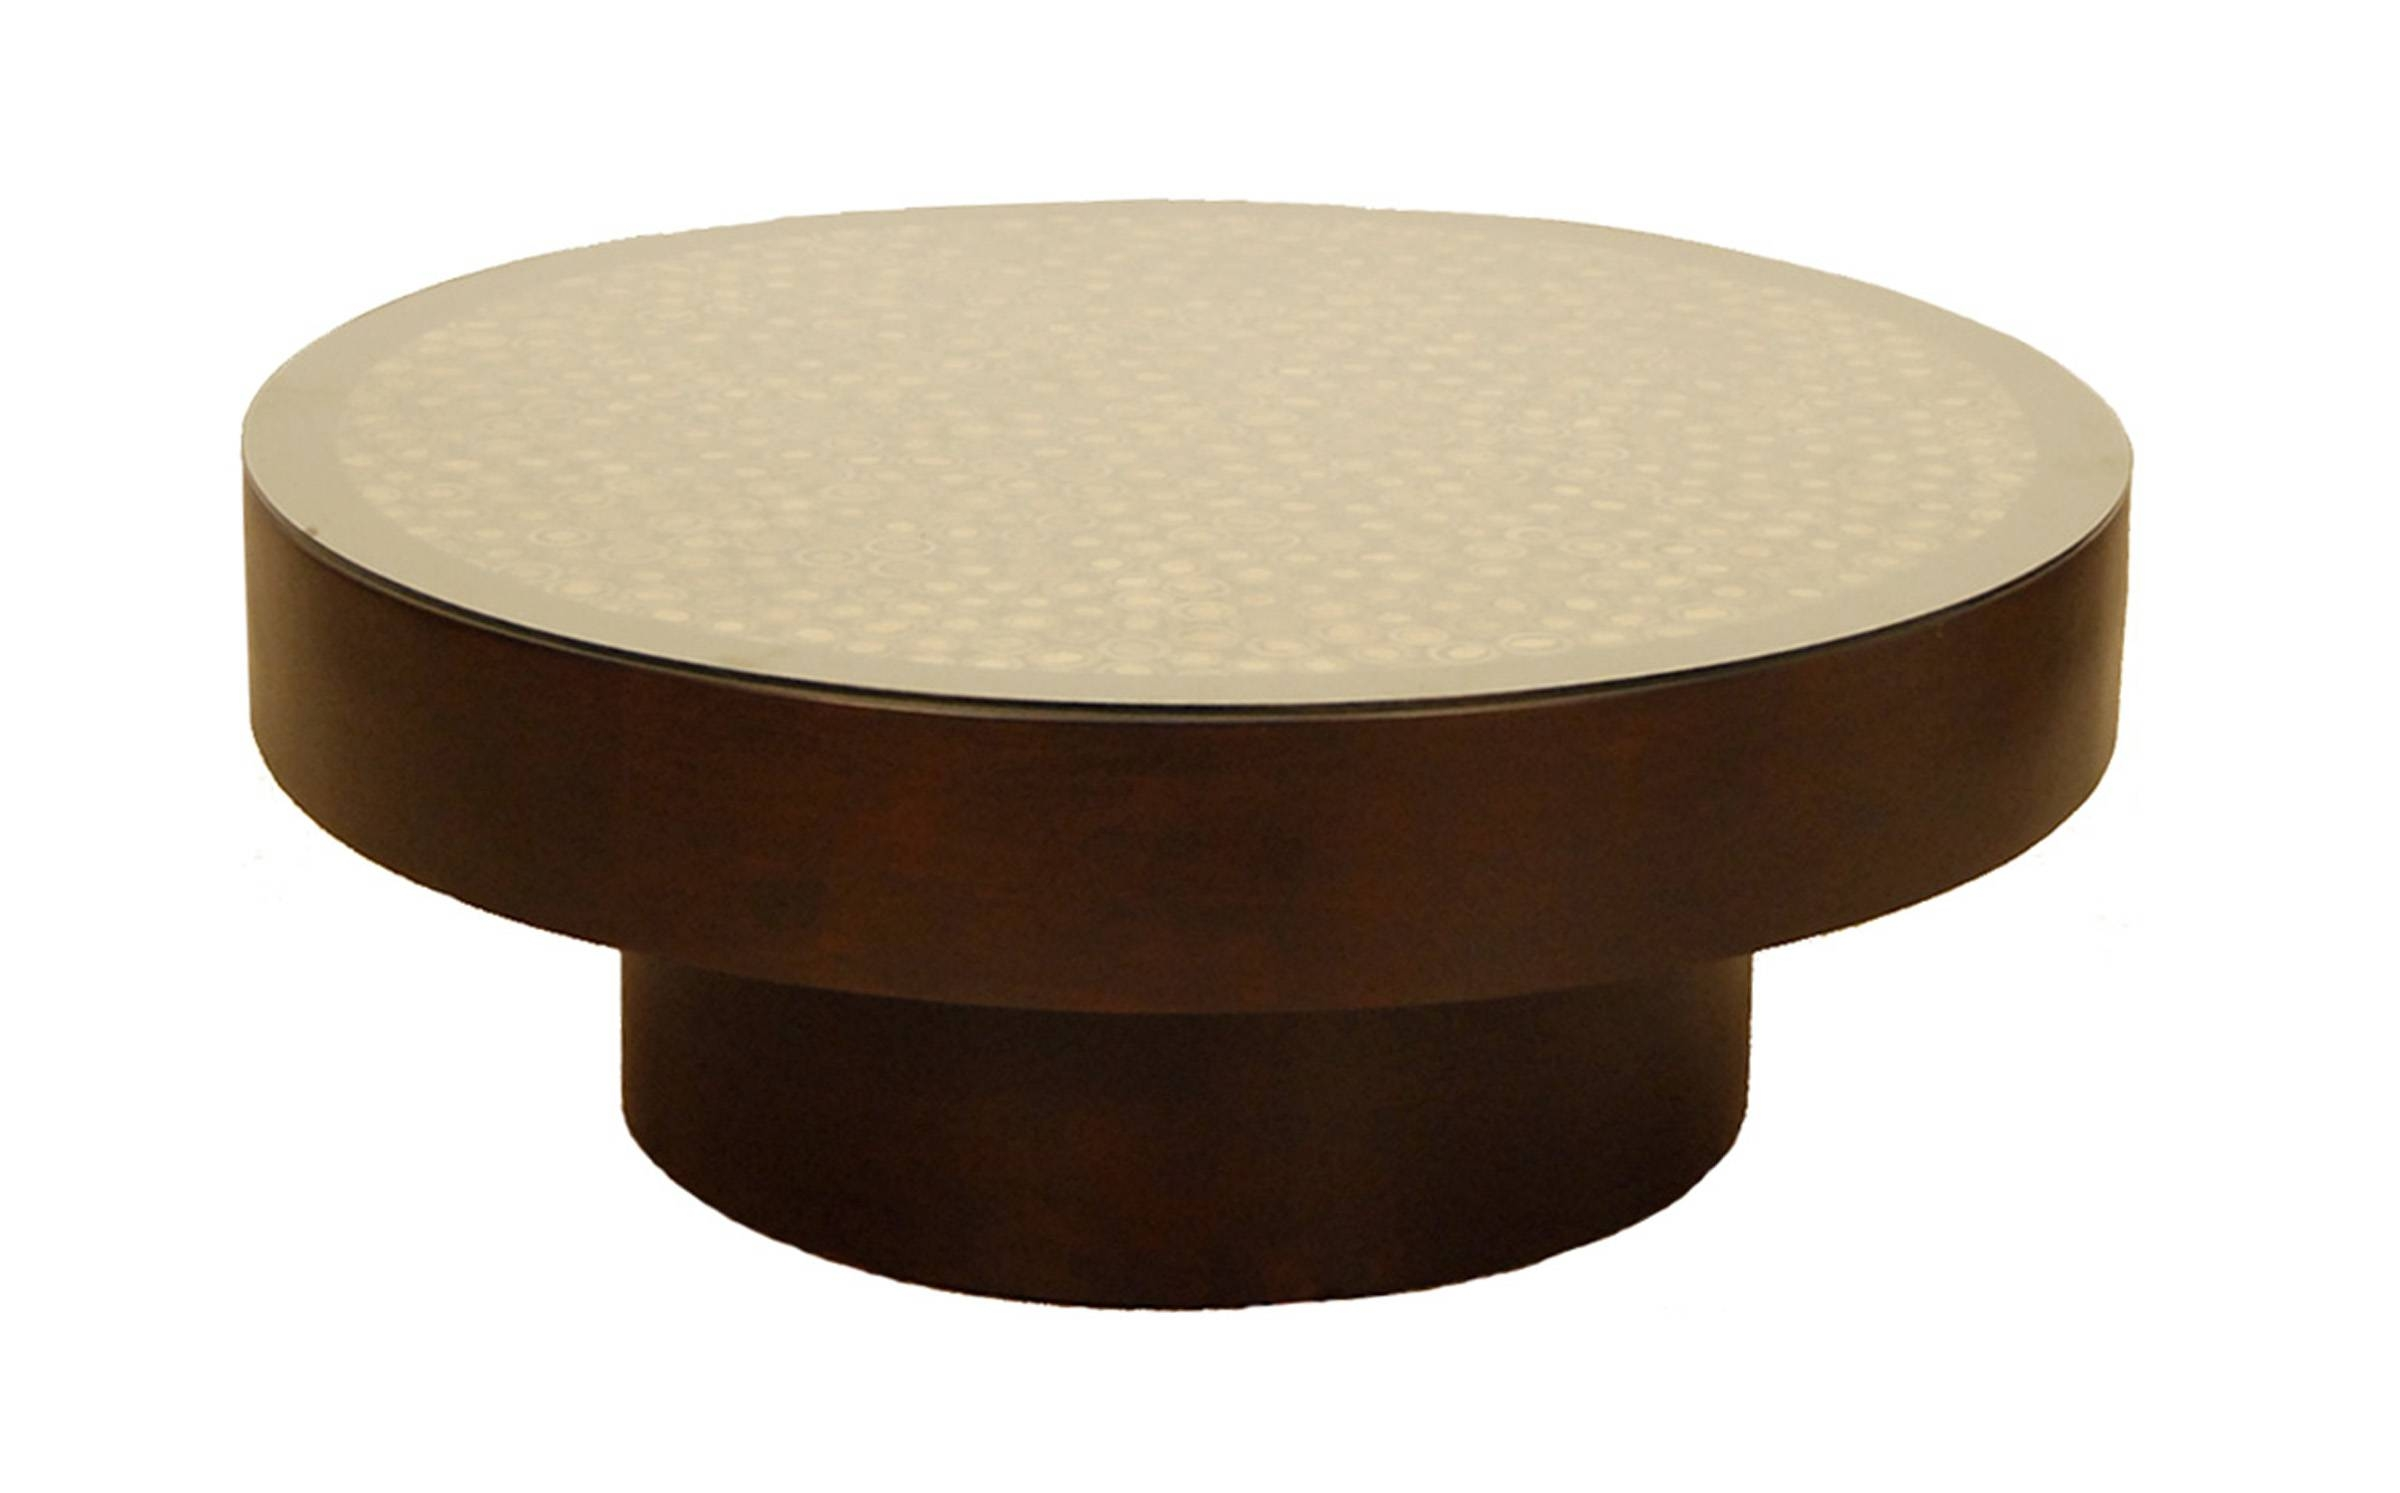 Coffee Tables: Best Small Round Coffee Tables Designs Wood Coffee With Regard To Small Round Coffee Tables (View 14 of 30)